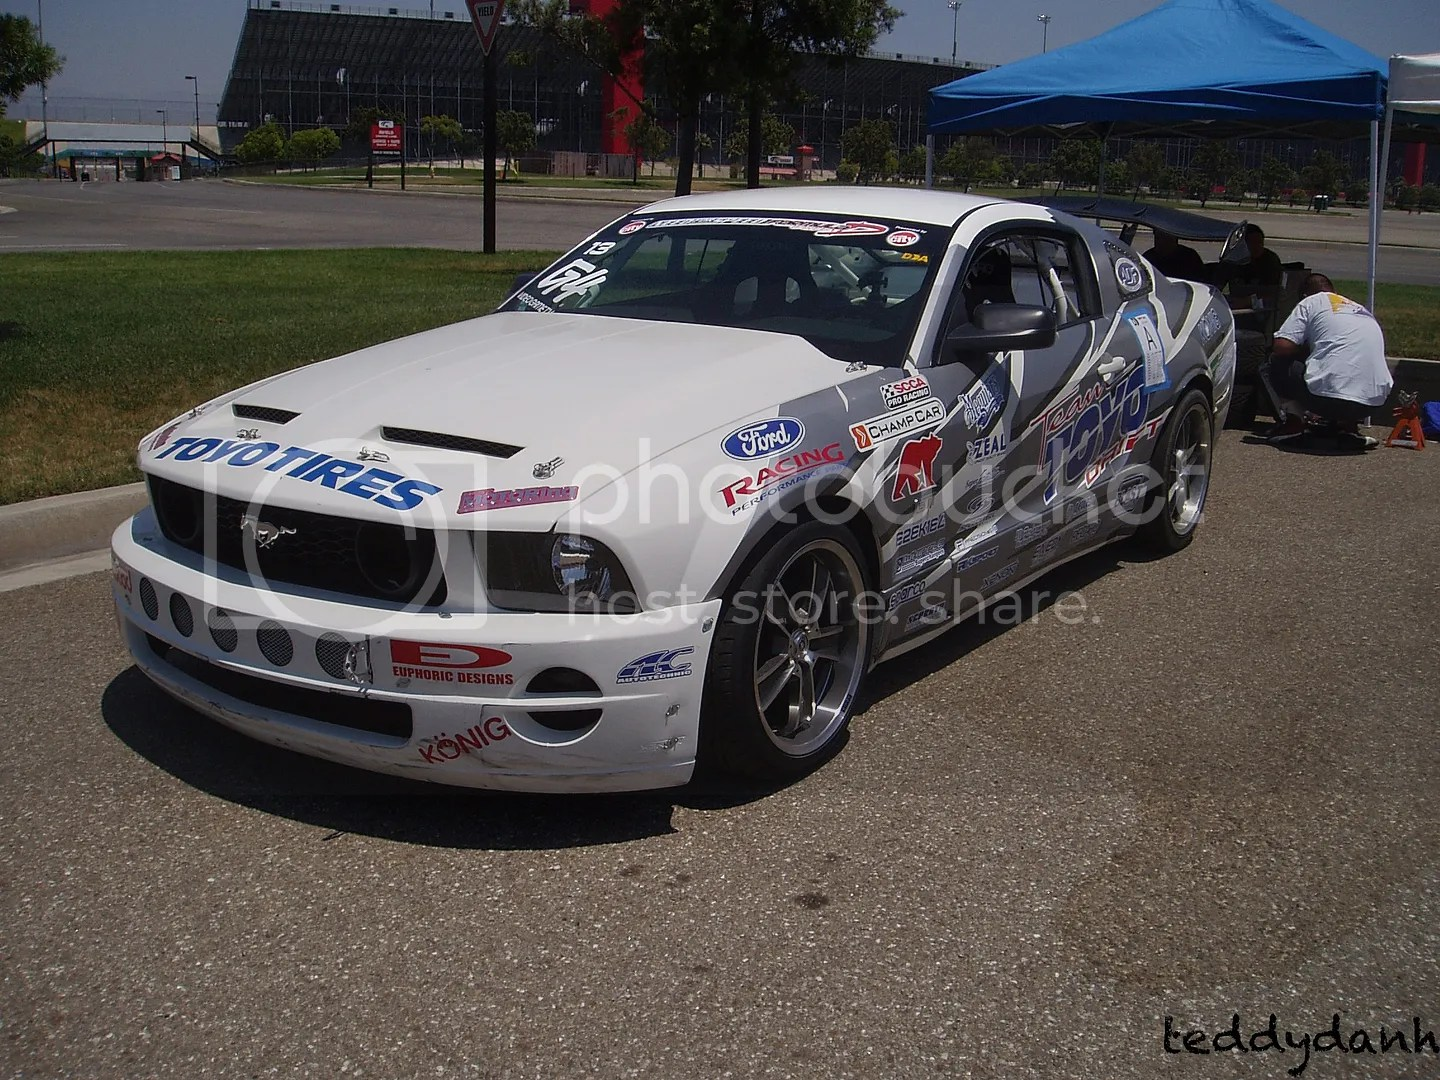 Drift Day 23,Ken Gushi,Mustang